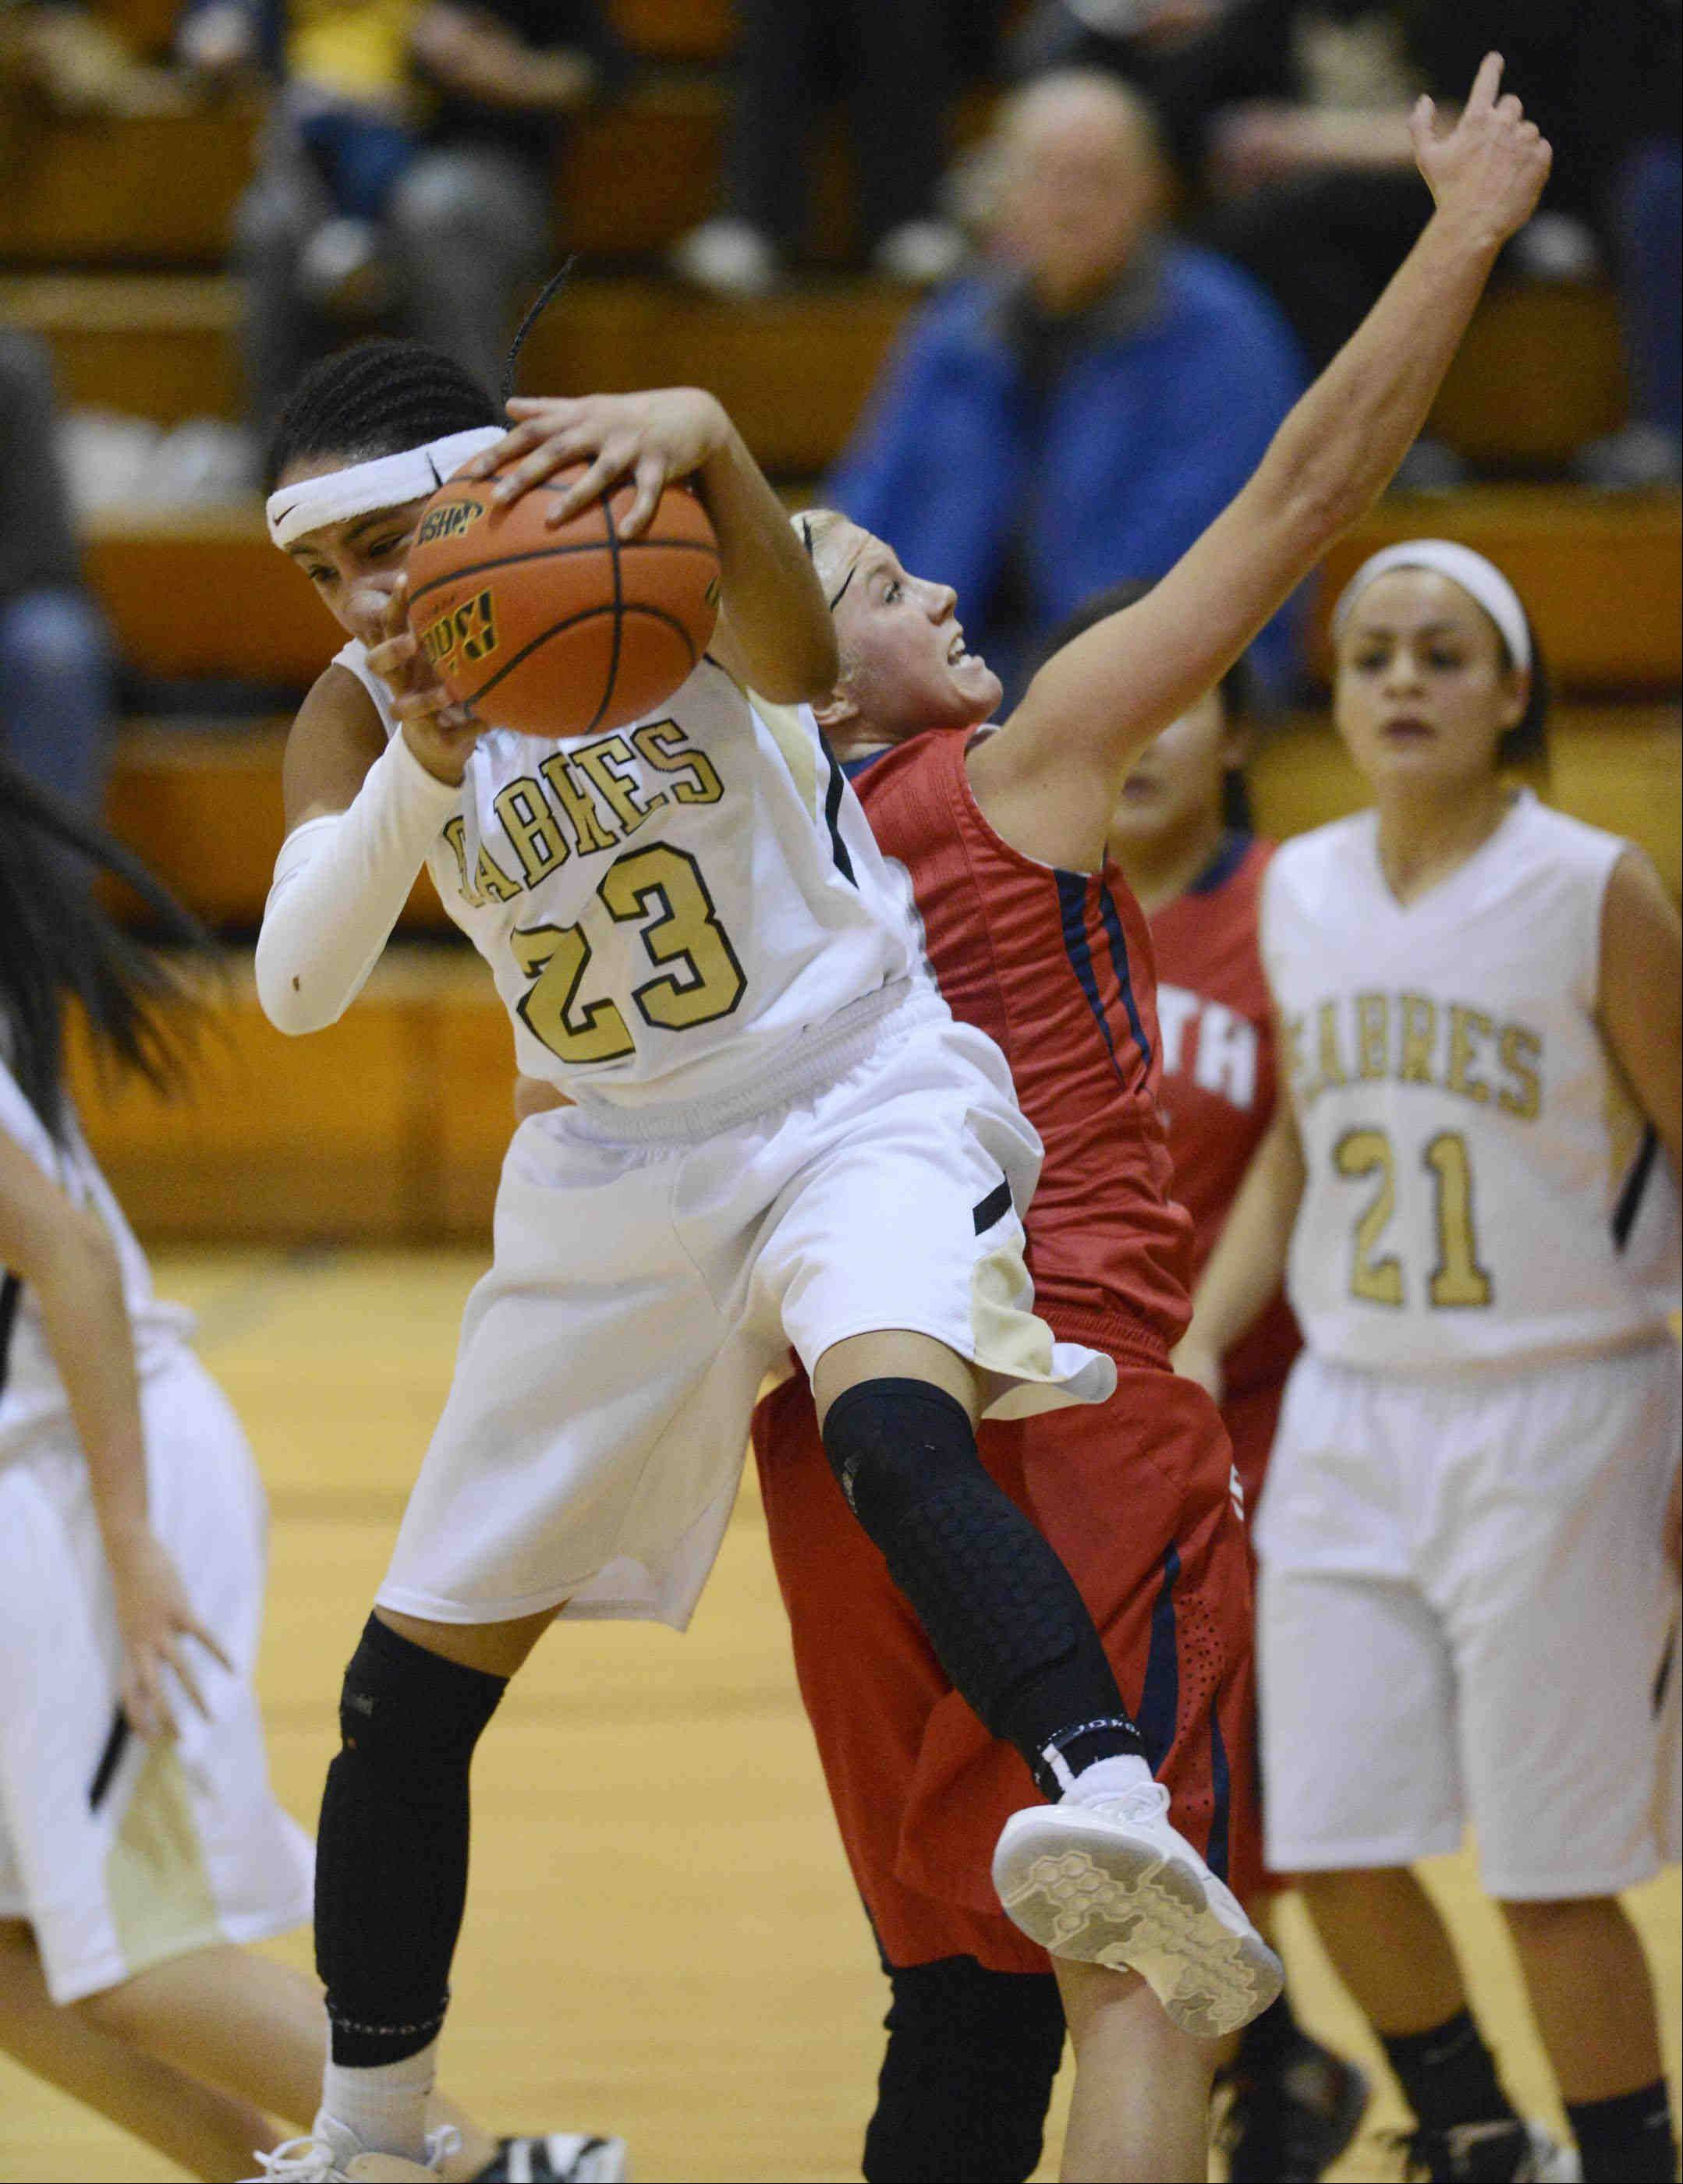 Streamwood's Deja Moore takes a rebound away from South Elgin's Kara Rodriguez in the Class 4A regional championship game Thursday in Streamwood.